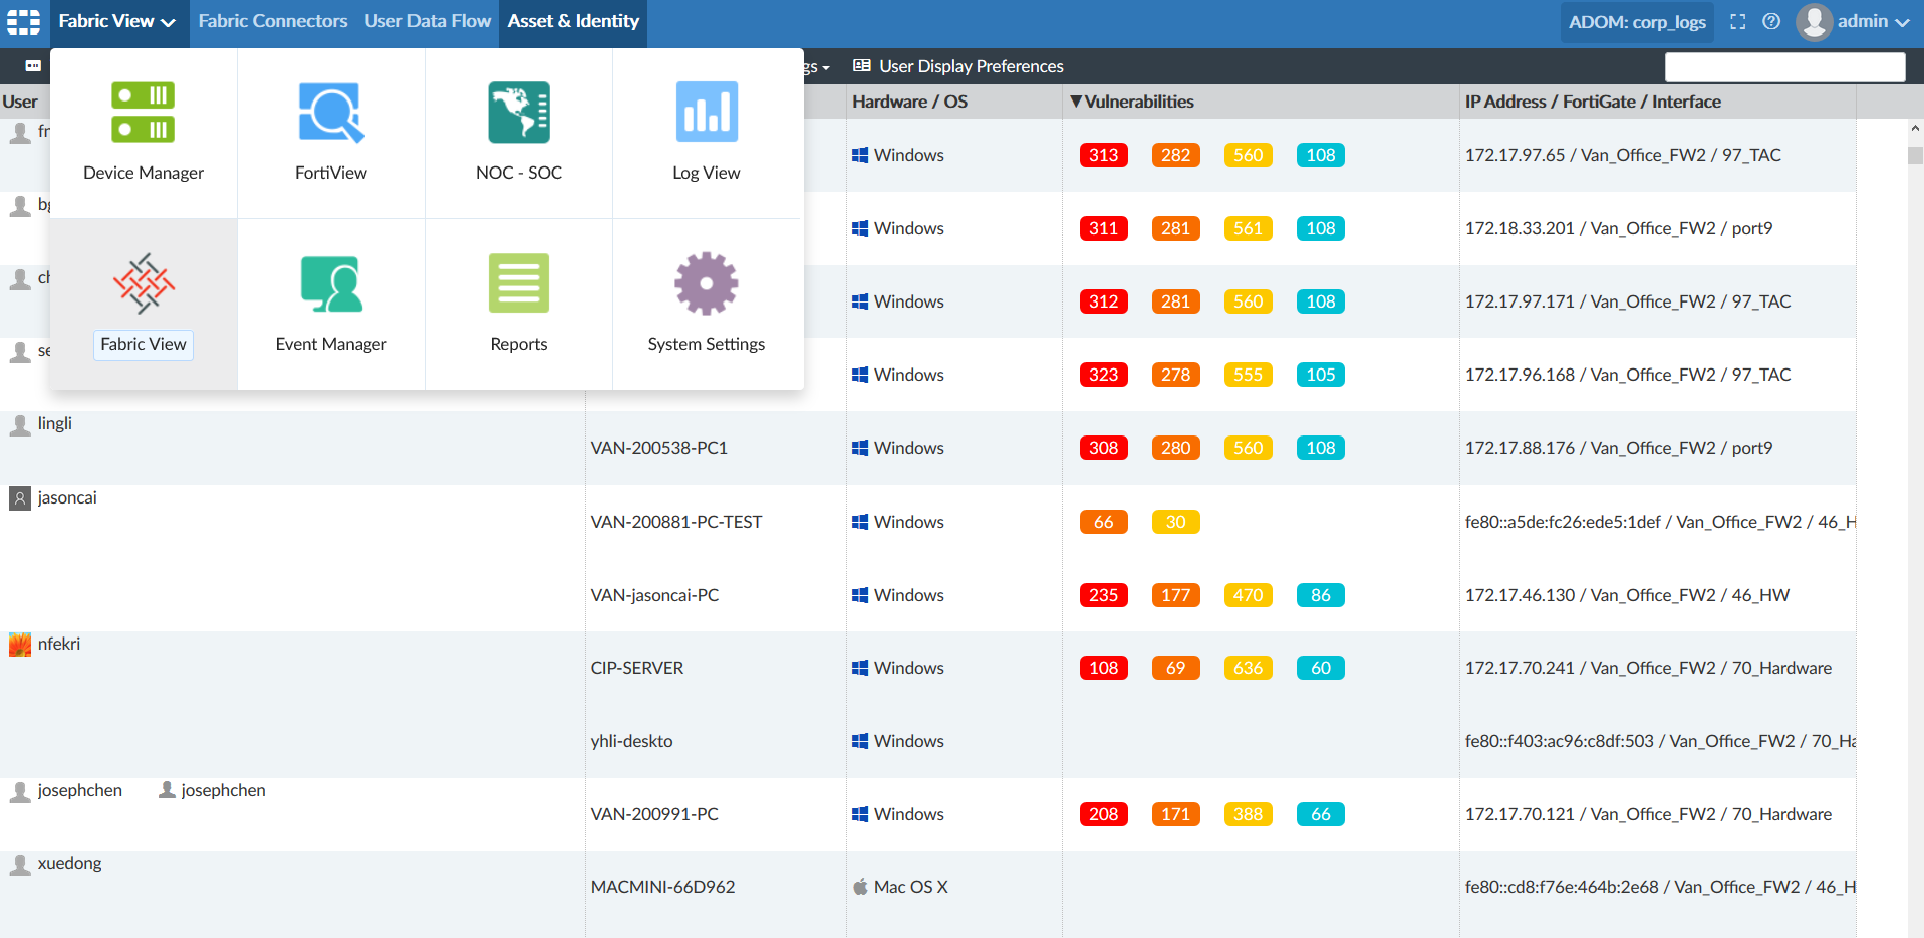 Screenshot displaying Asset & Identity Center